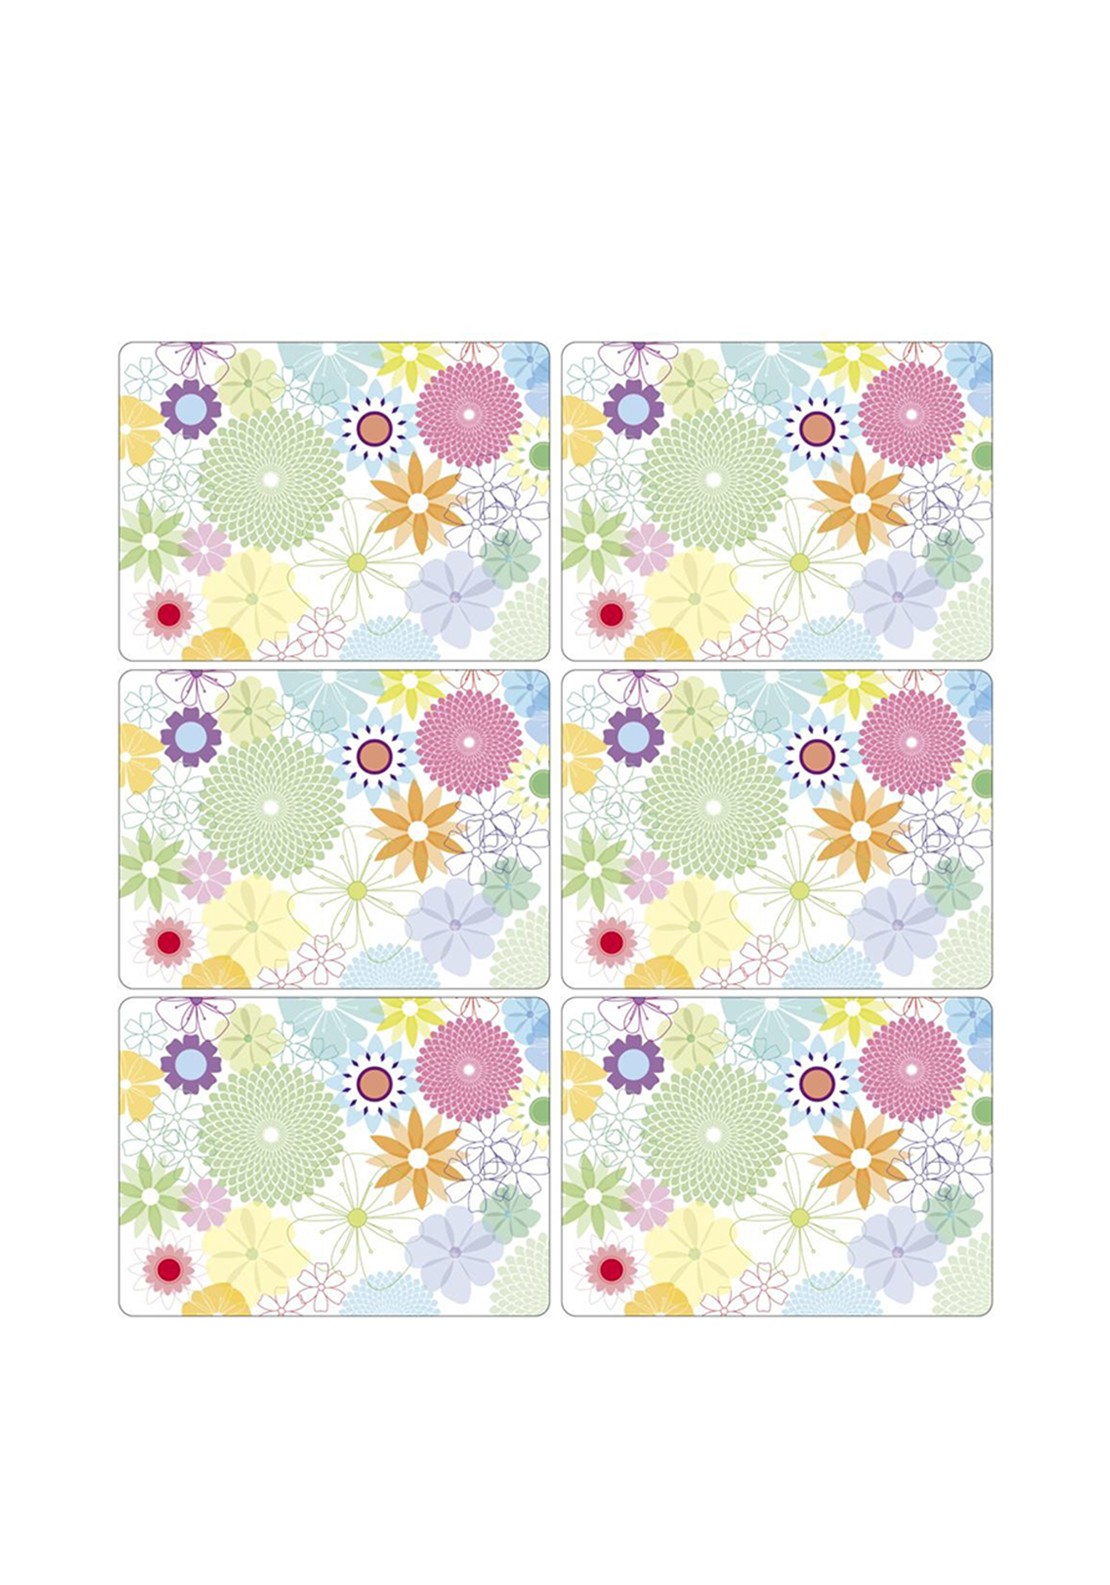 Pimpernel Crazy Daisy Set of 6 Placemats